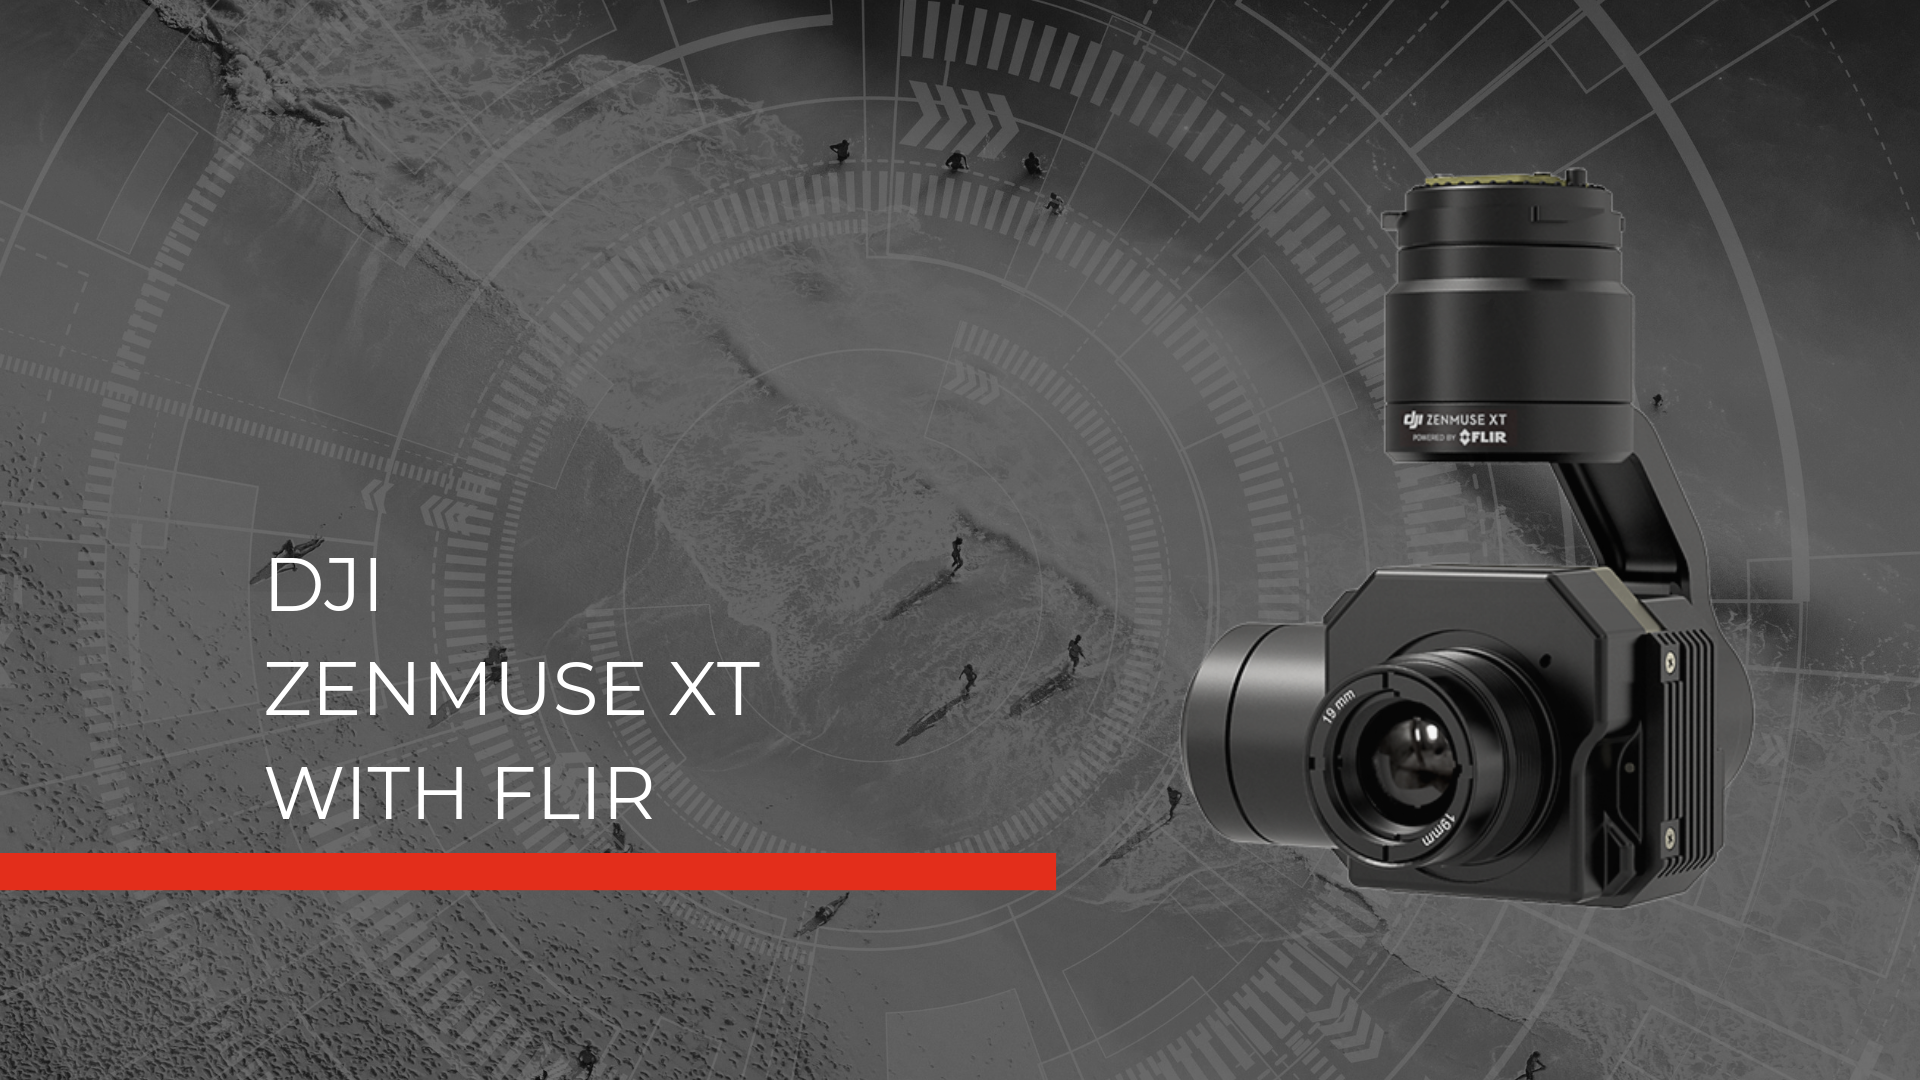 Zenmuse XT Hero Image thermal imaging for fire rescue drones